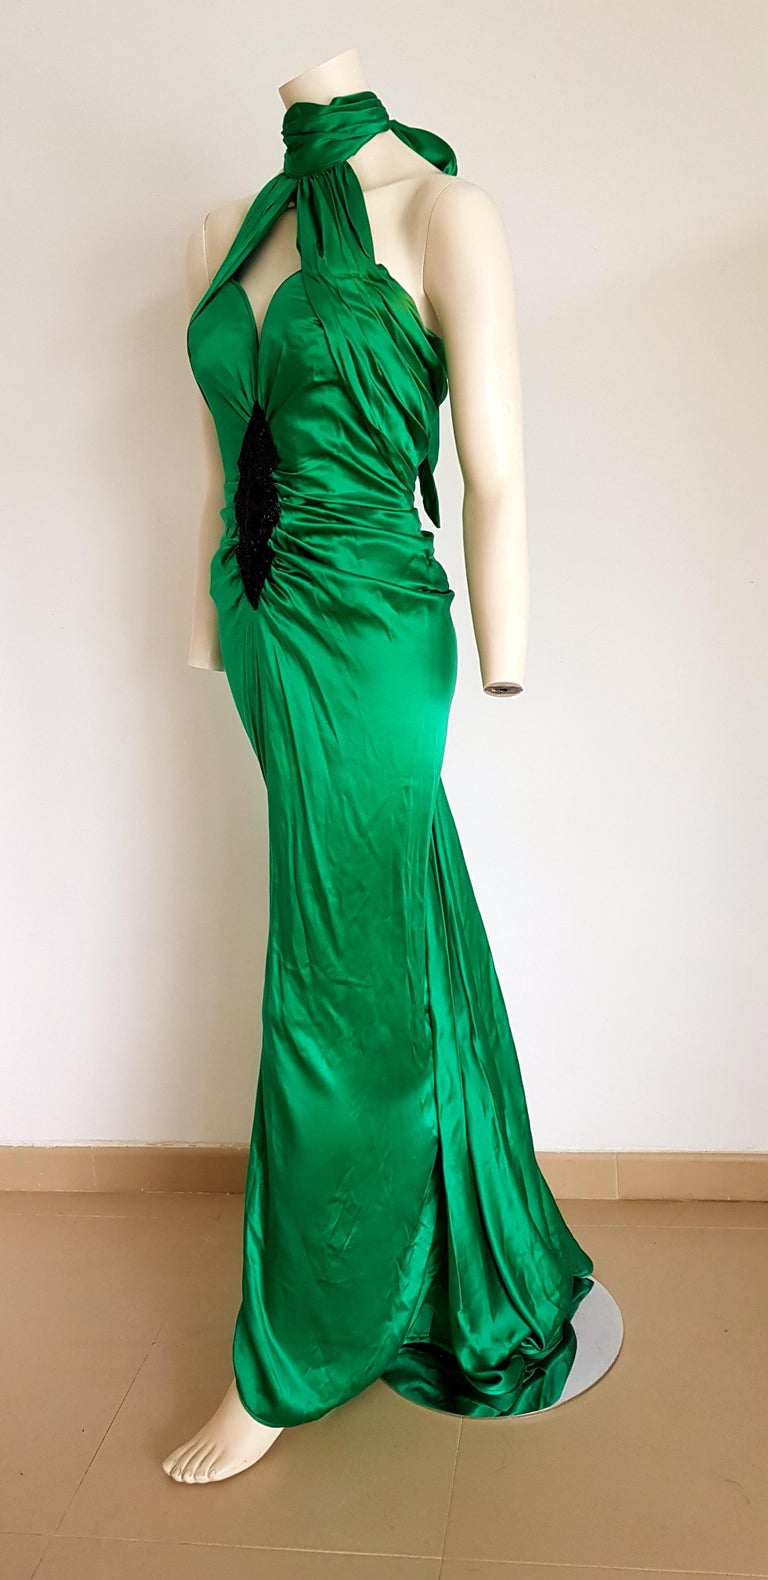 VALENTINO Haute Couture Green Silk Gown Evening Dress - Unworn, New In New Condition For Sale In Somo (Santander), ES